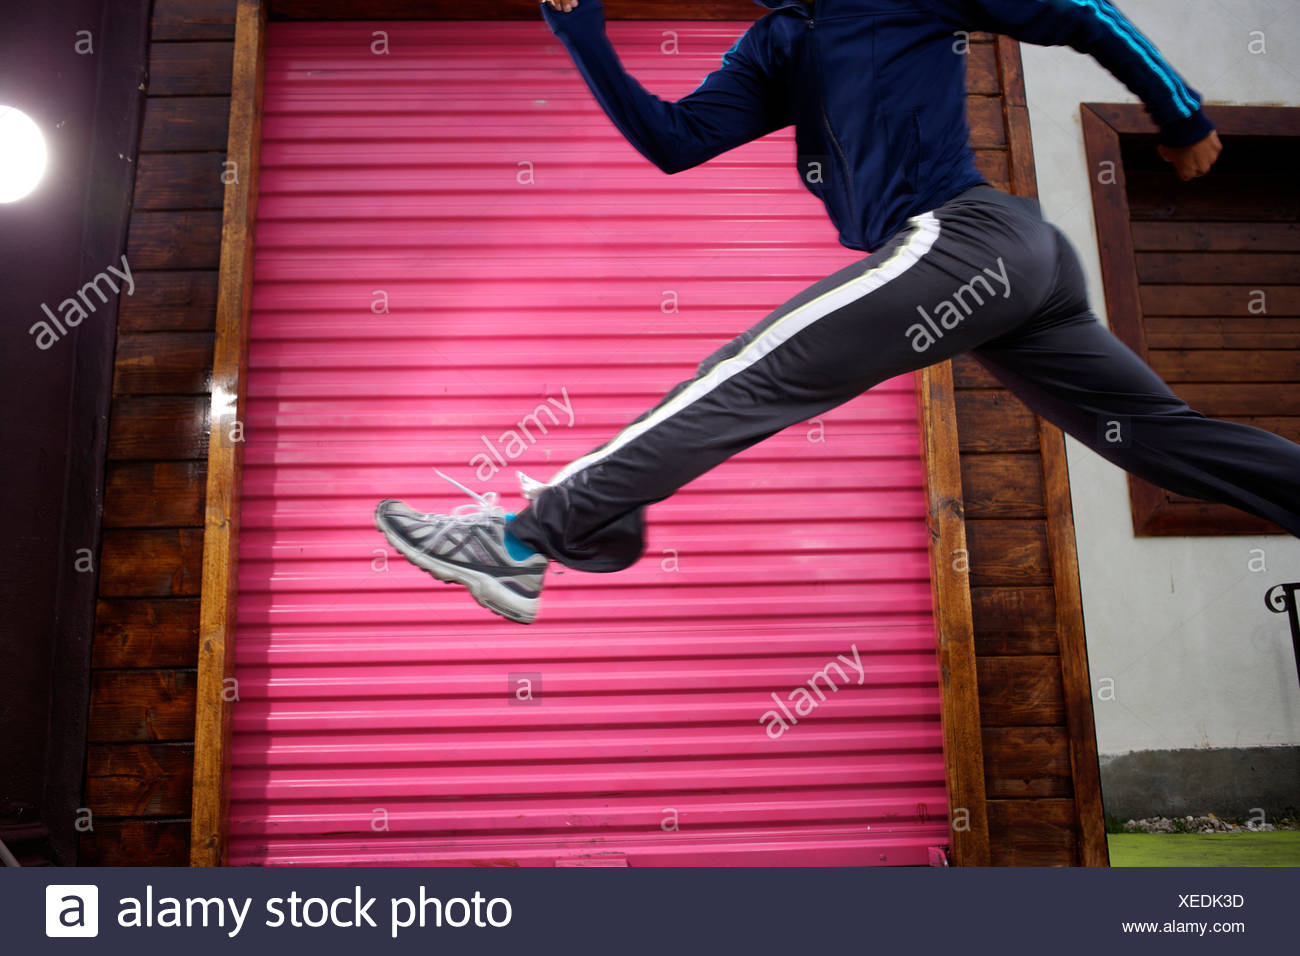 Legs and lower body of a female runner leaping with a pink door in the backgroud in San Diego. - Stock Image